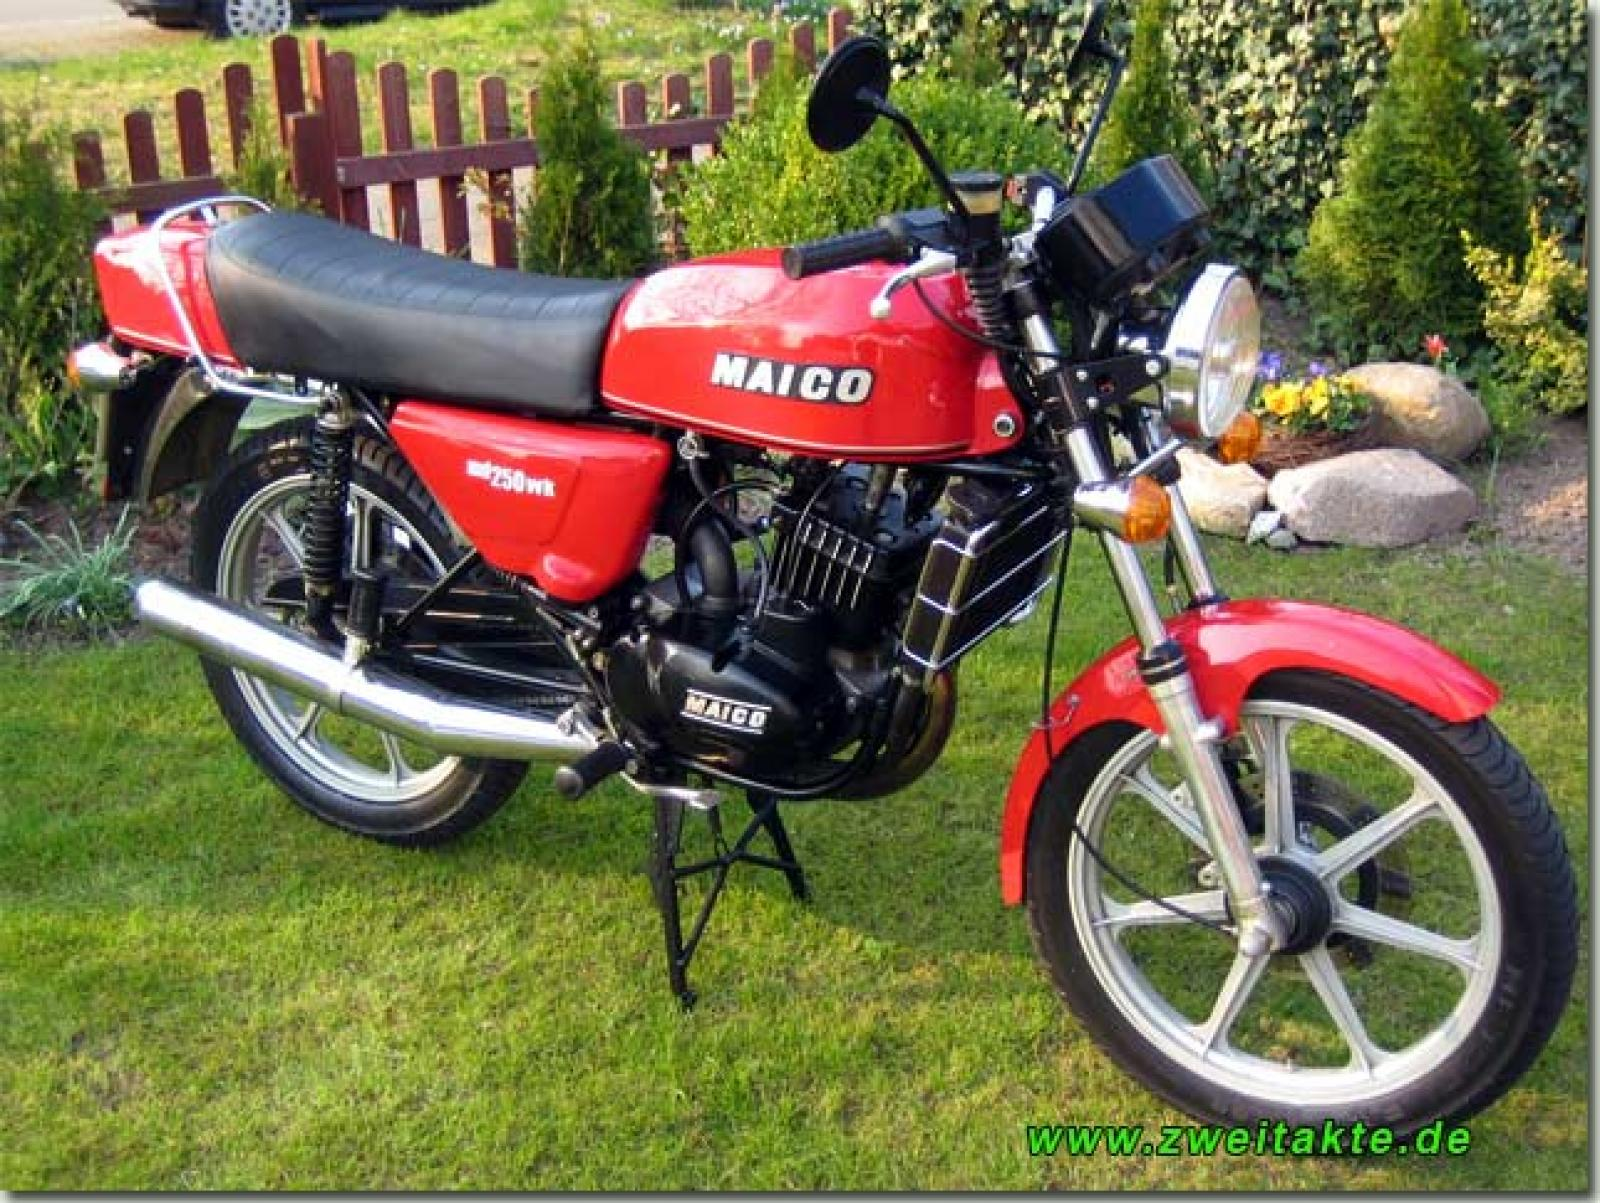 Maico MD 250 WK 1983 images #103717